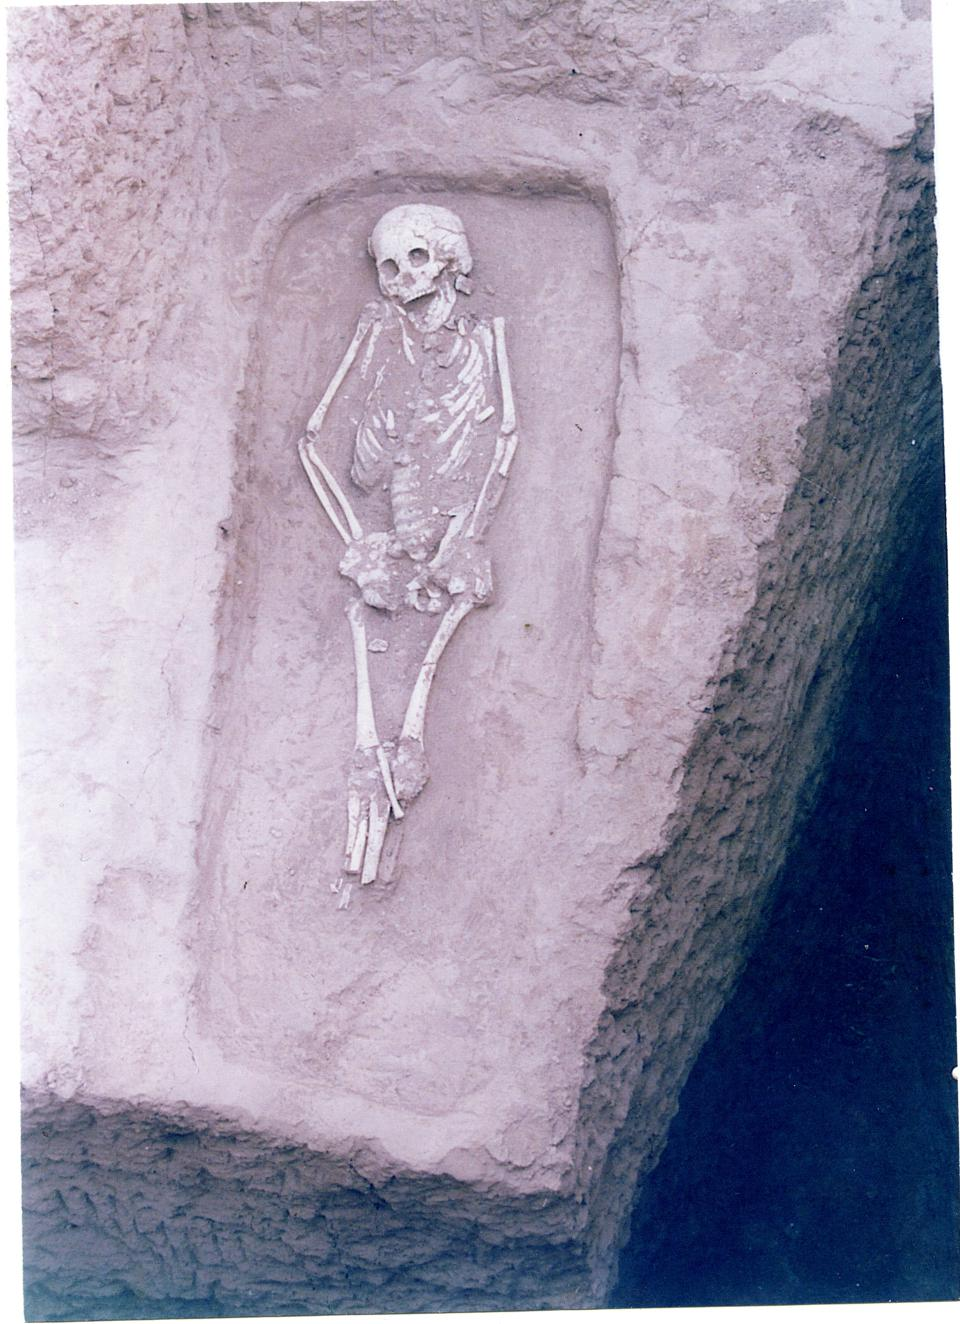 Photo of a burial from Guanjia, China, dating to 3300-2900 BC.